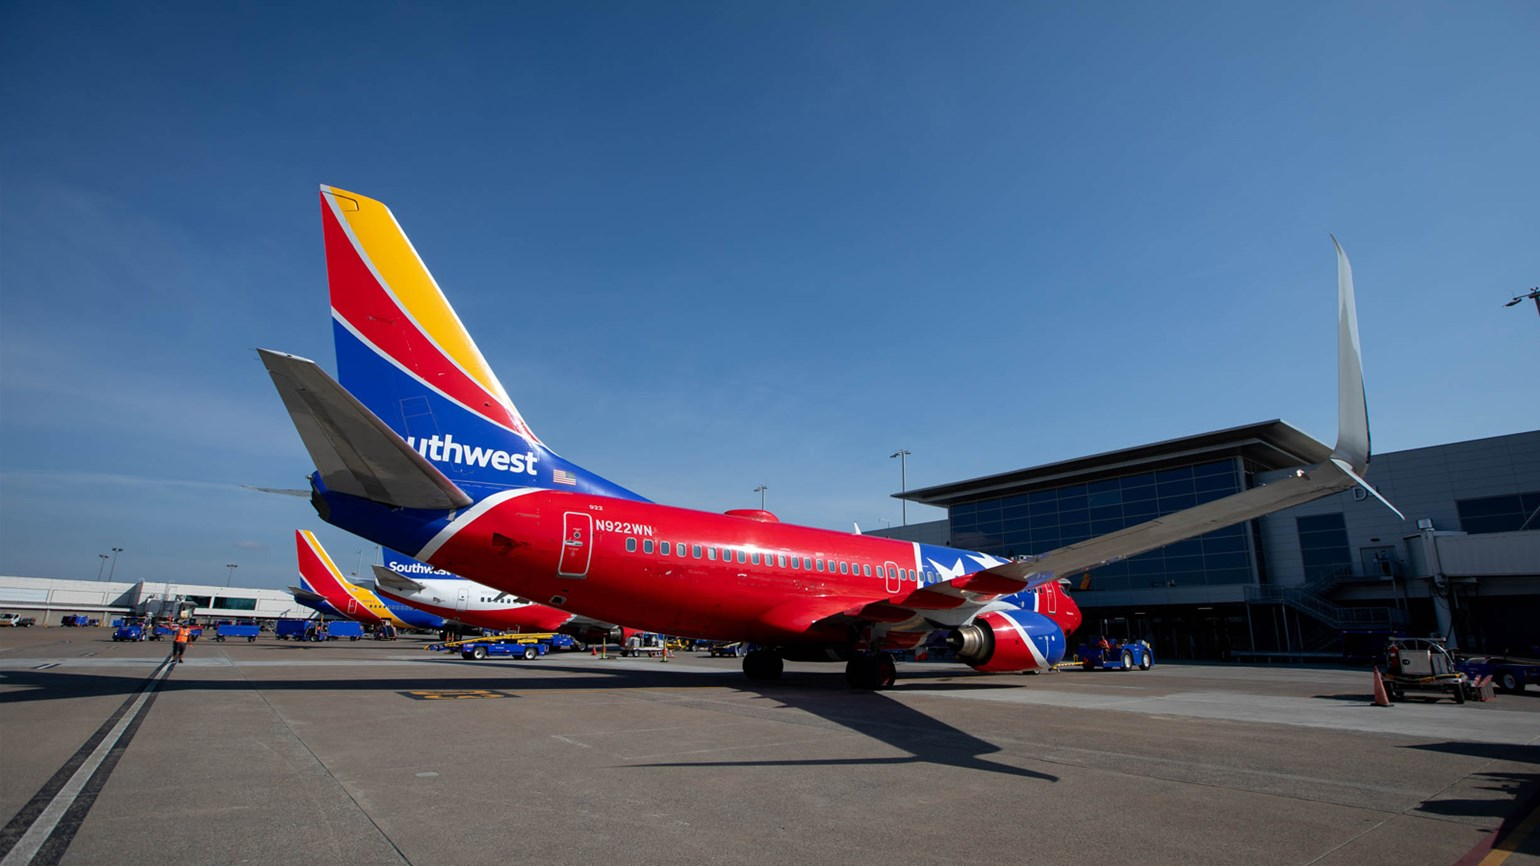 Southwest Airlines offers full business content on Amadeus